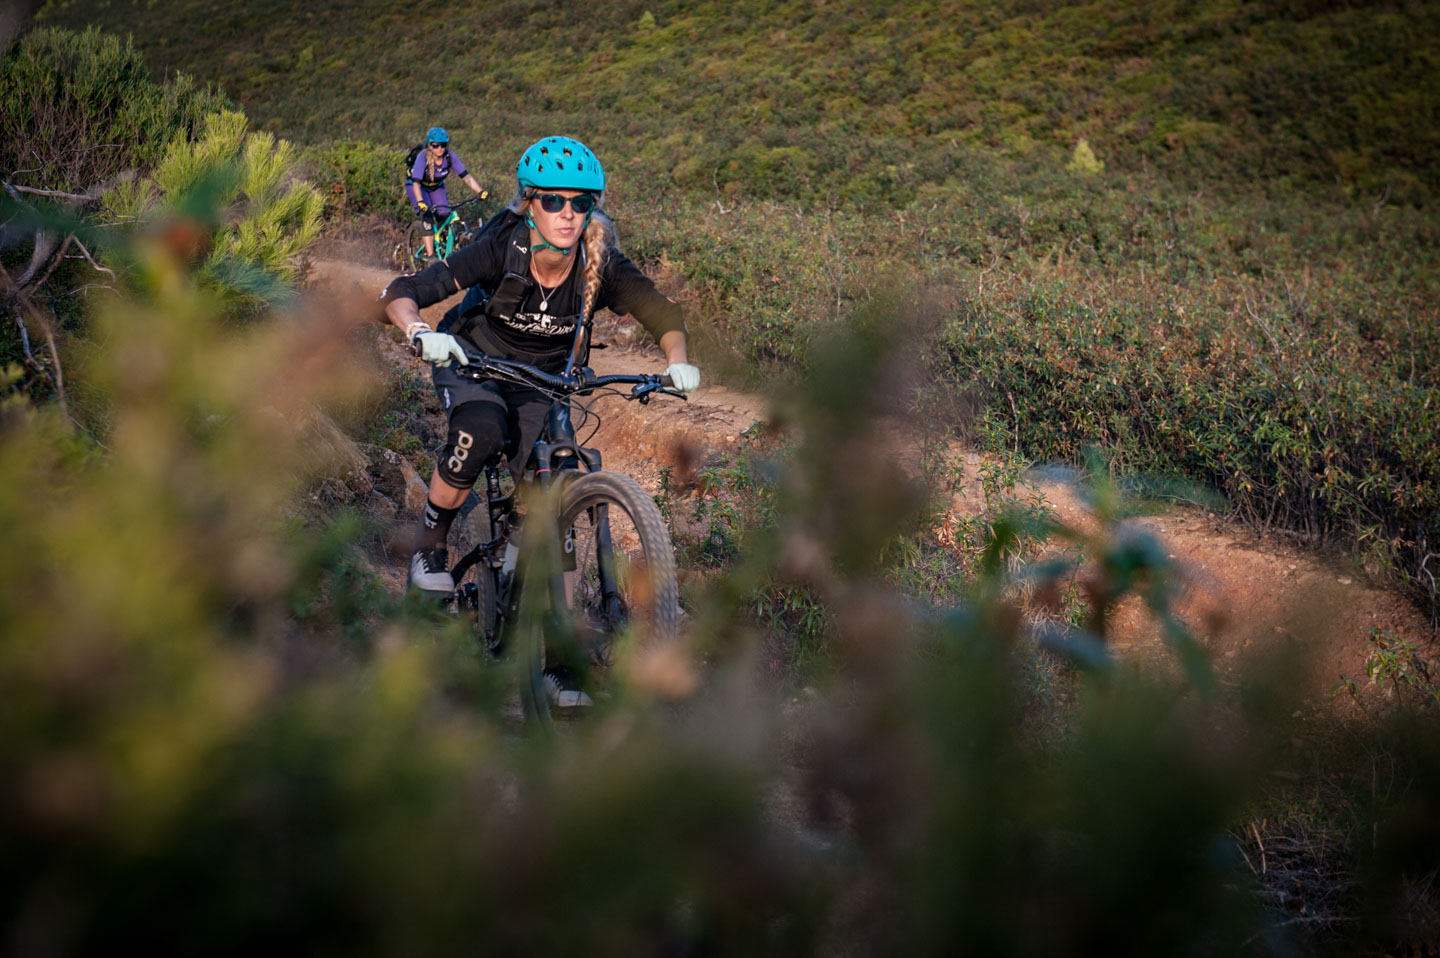 Girl-Power am Donkey-Trail | Bikefex